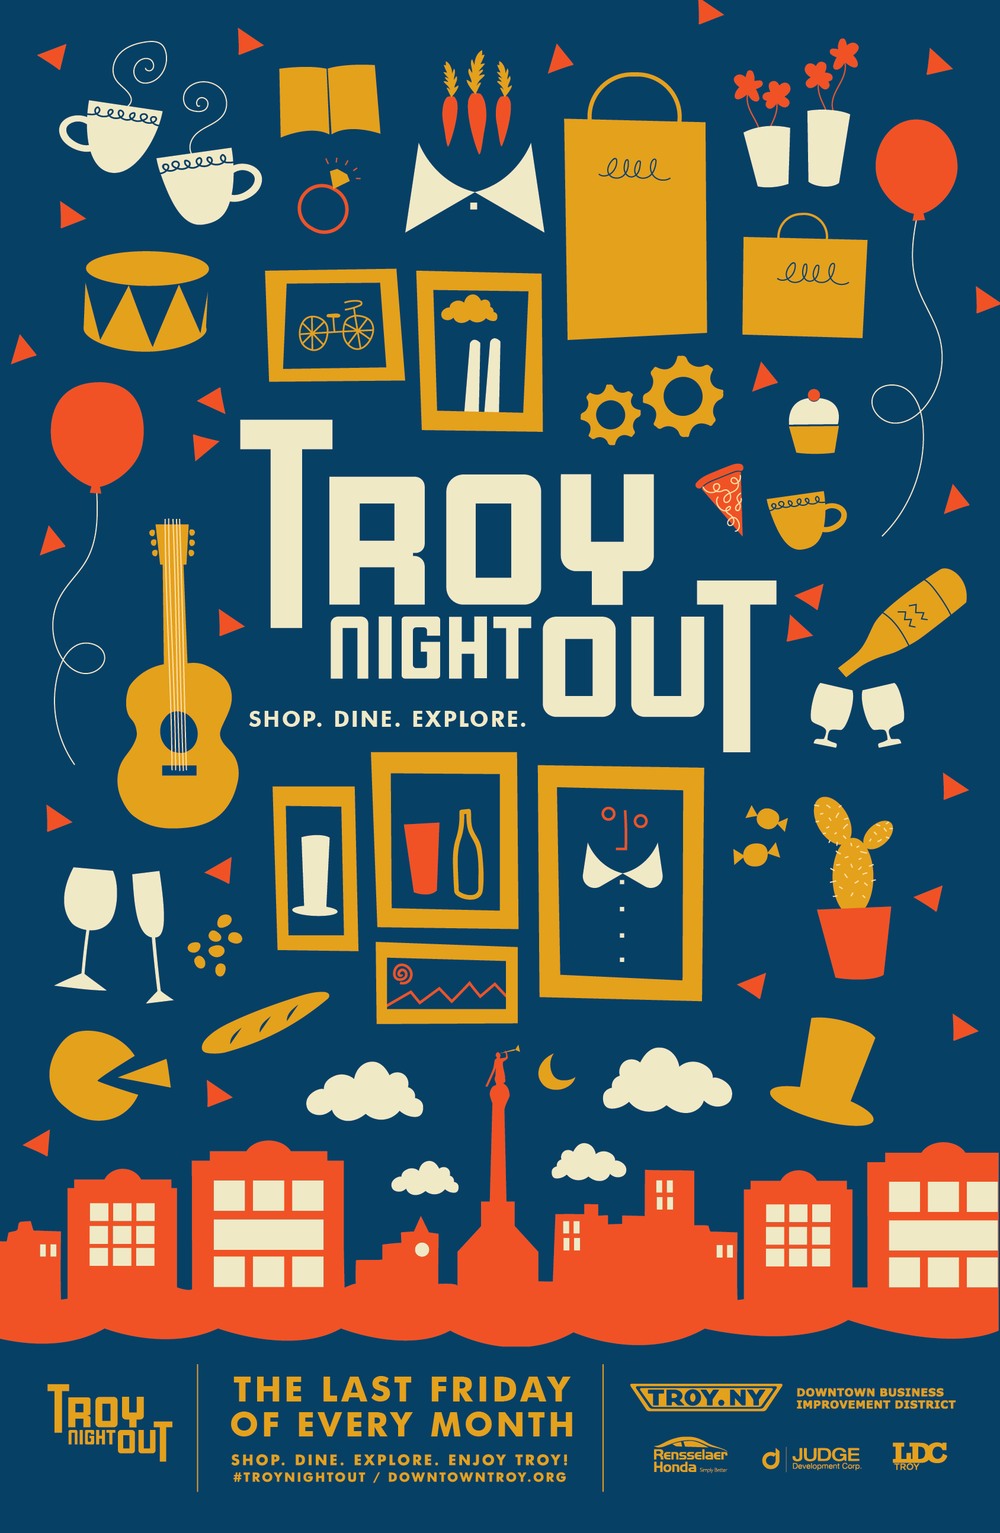 Troy Night Out Poster_11x17_web-01-01.png